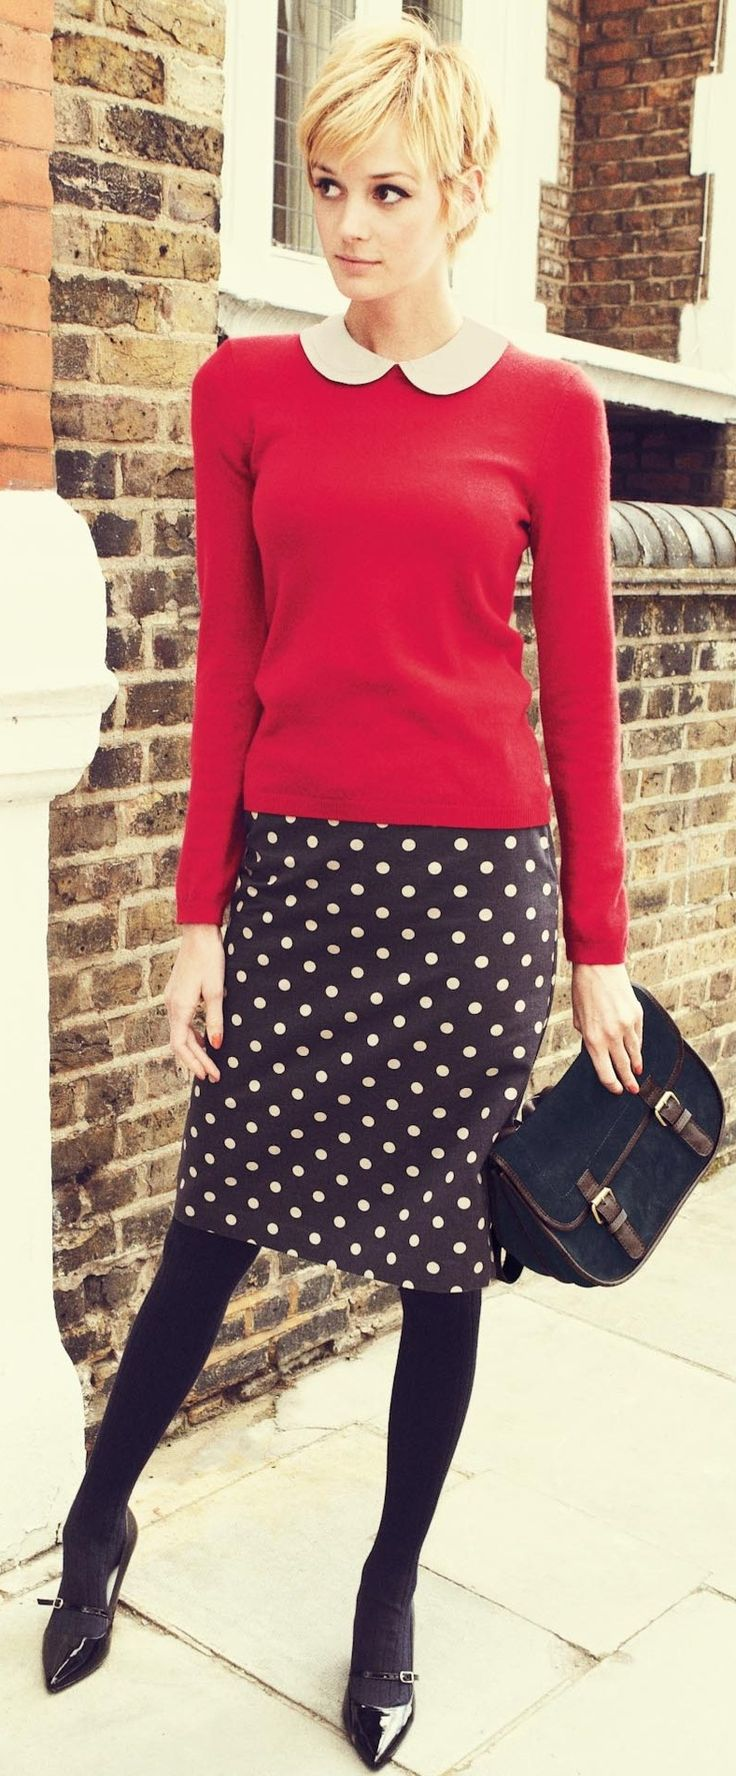 Outfit PERFECTION! Red knit with white peter pan collar paired with black and white polka dotted pencil skirt.